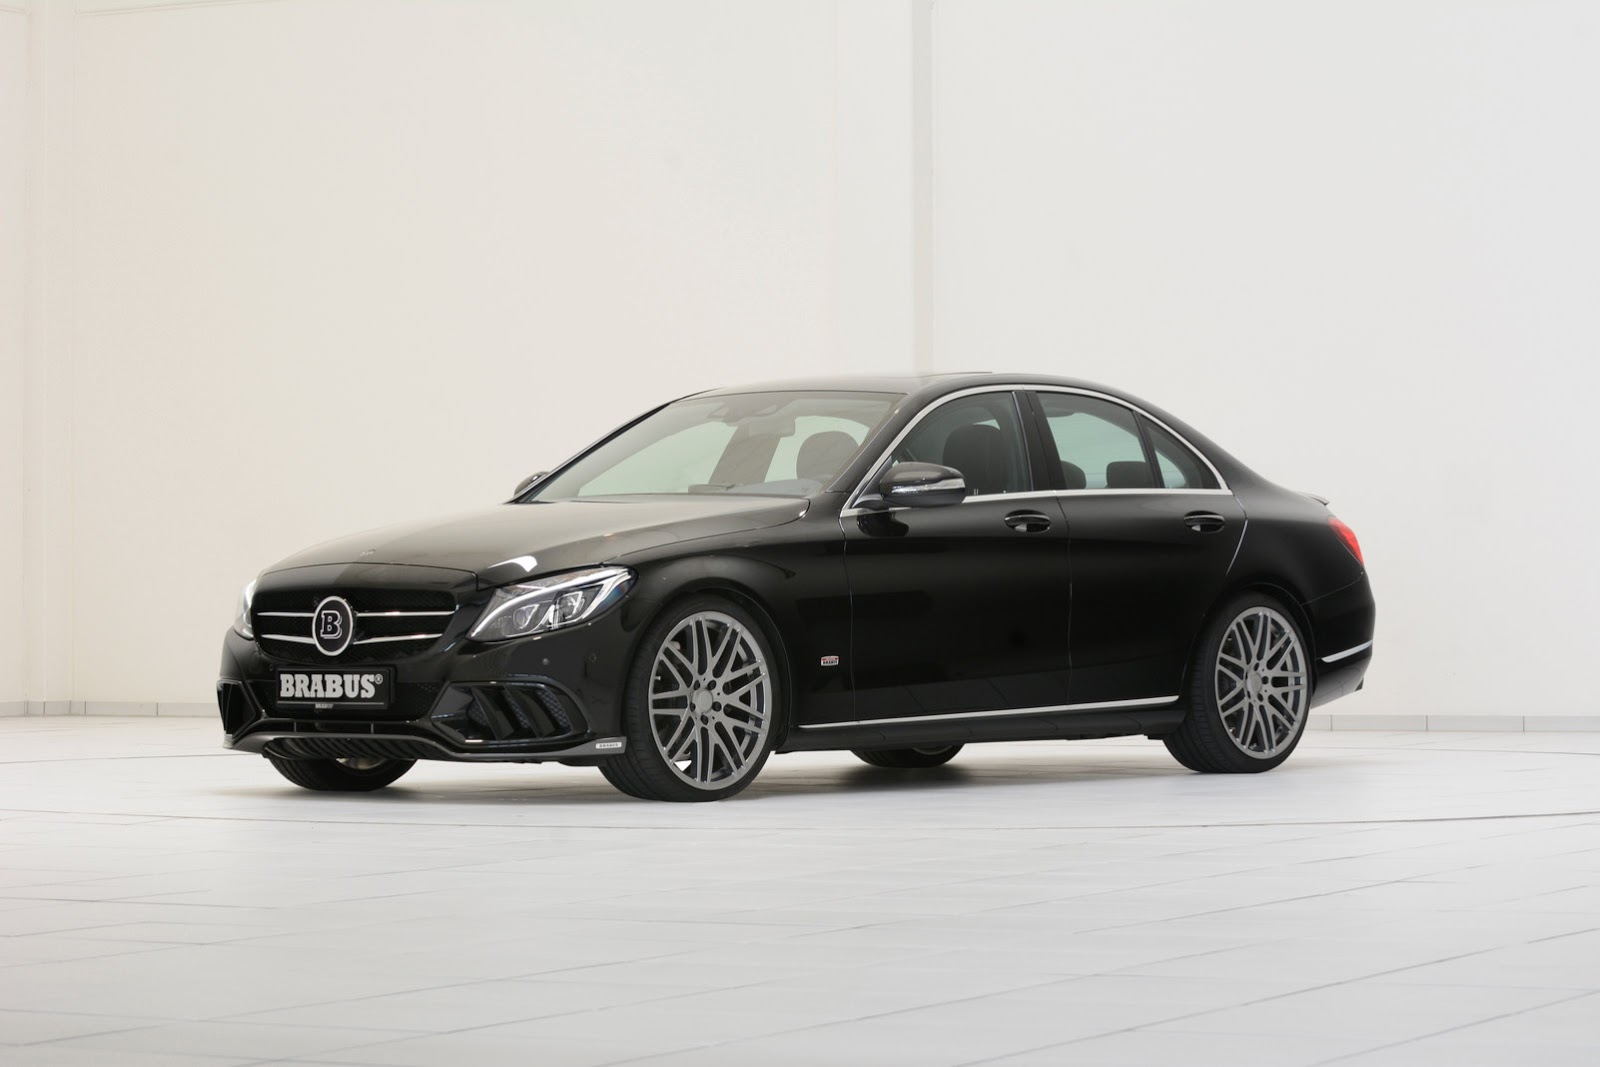 Brabus tunes into new 2015 mercedes benz c class w205 41 for Mercedes benz w205